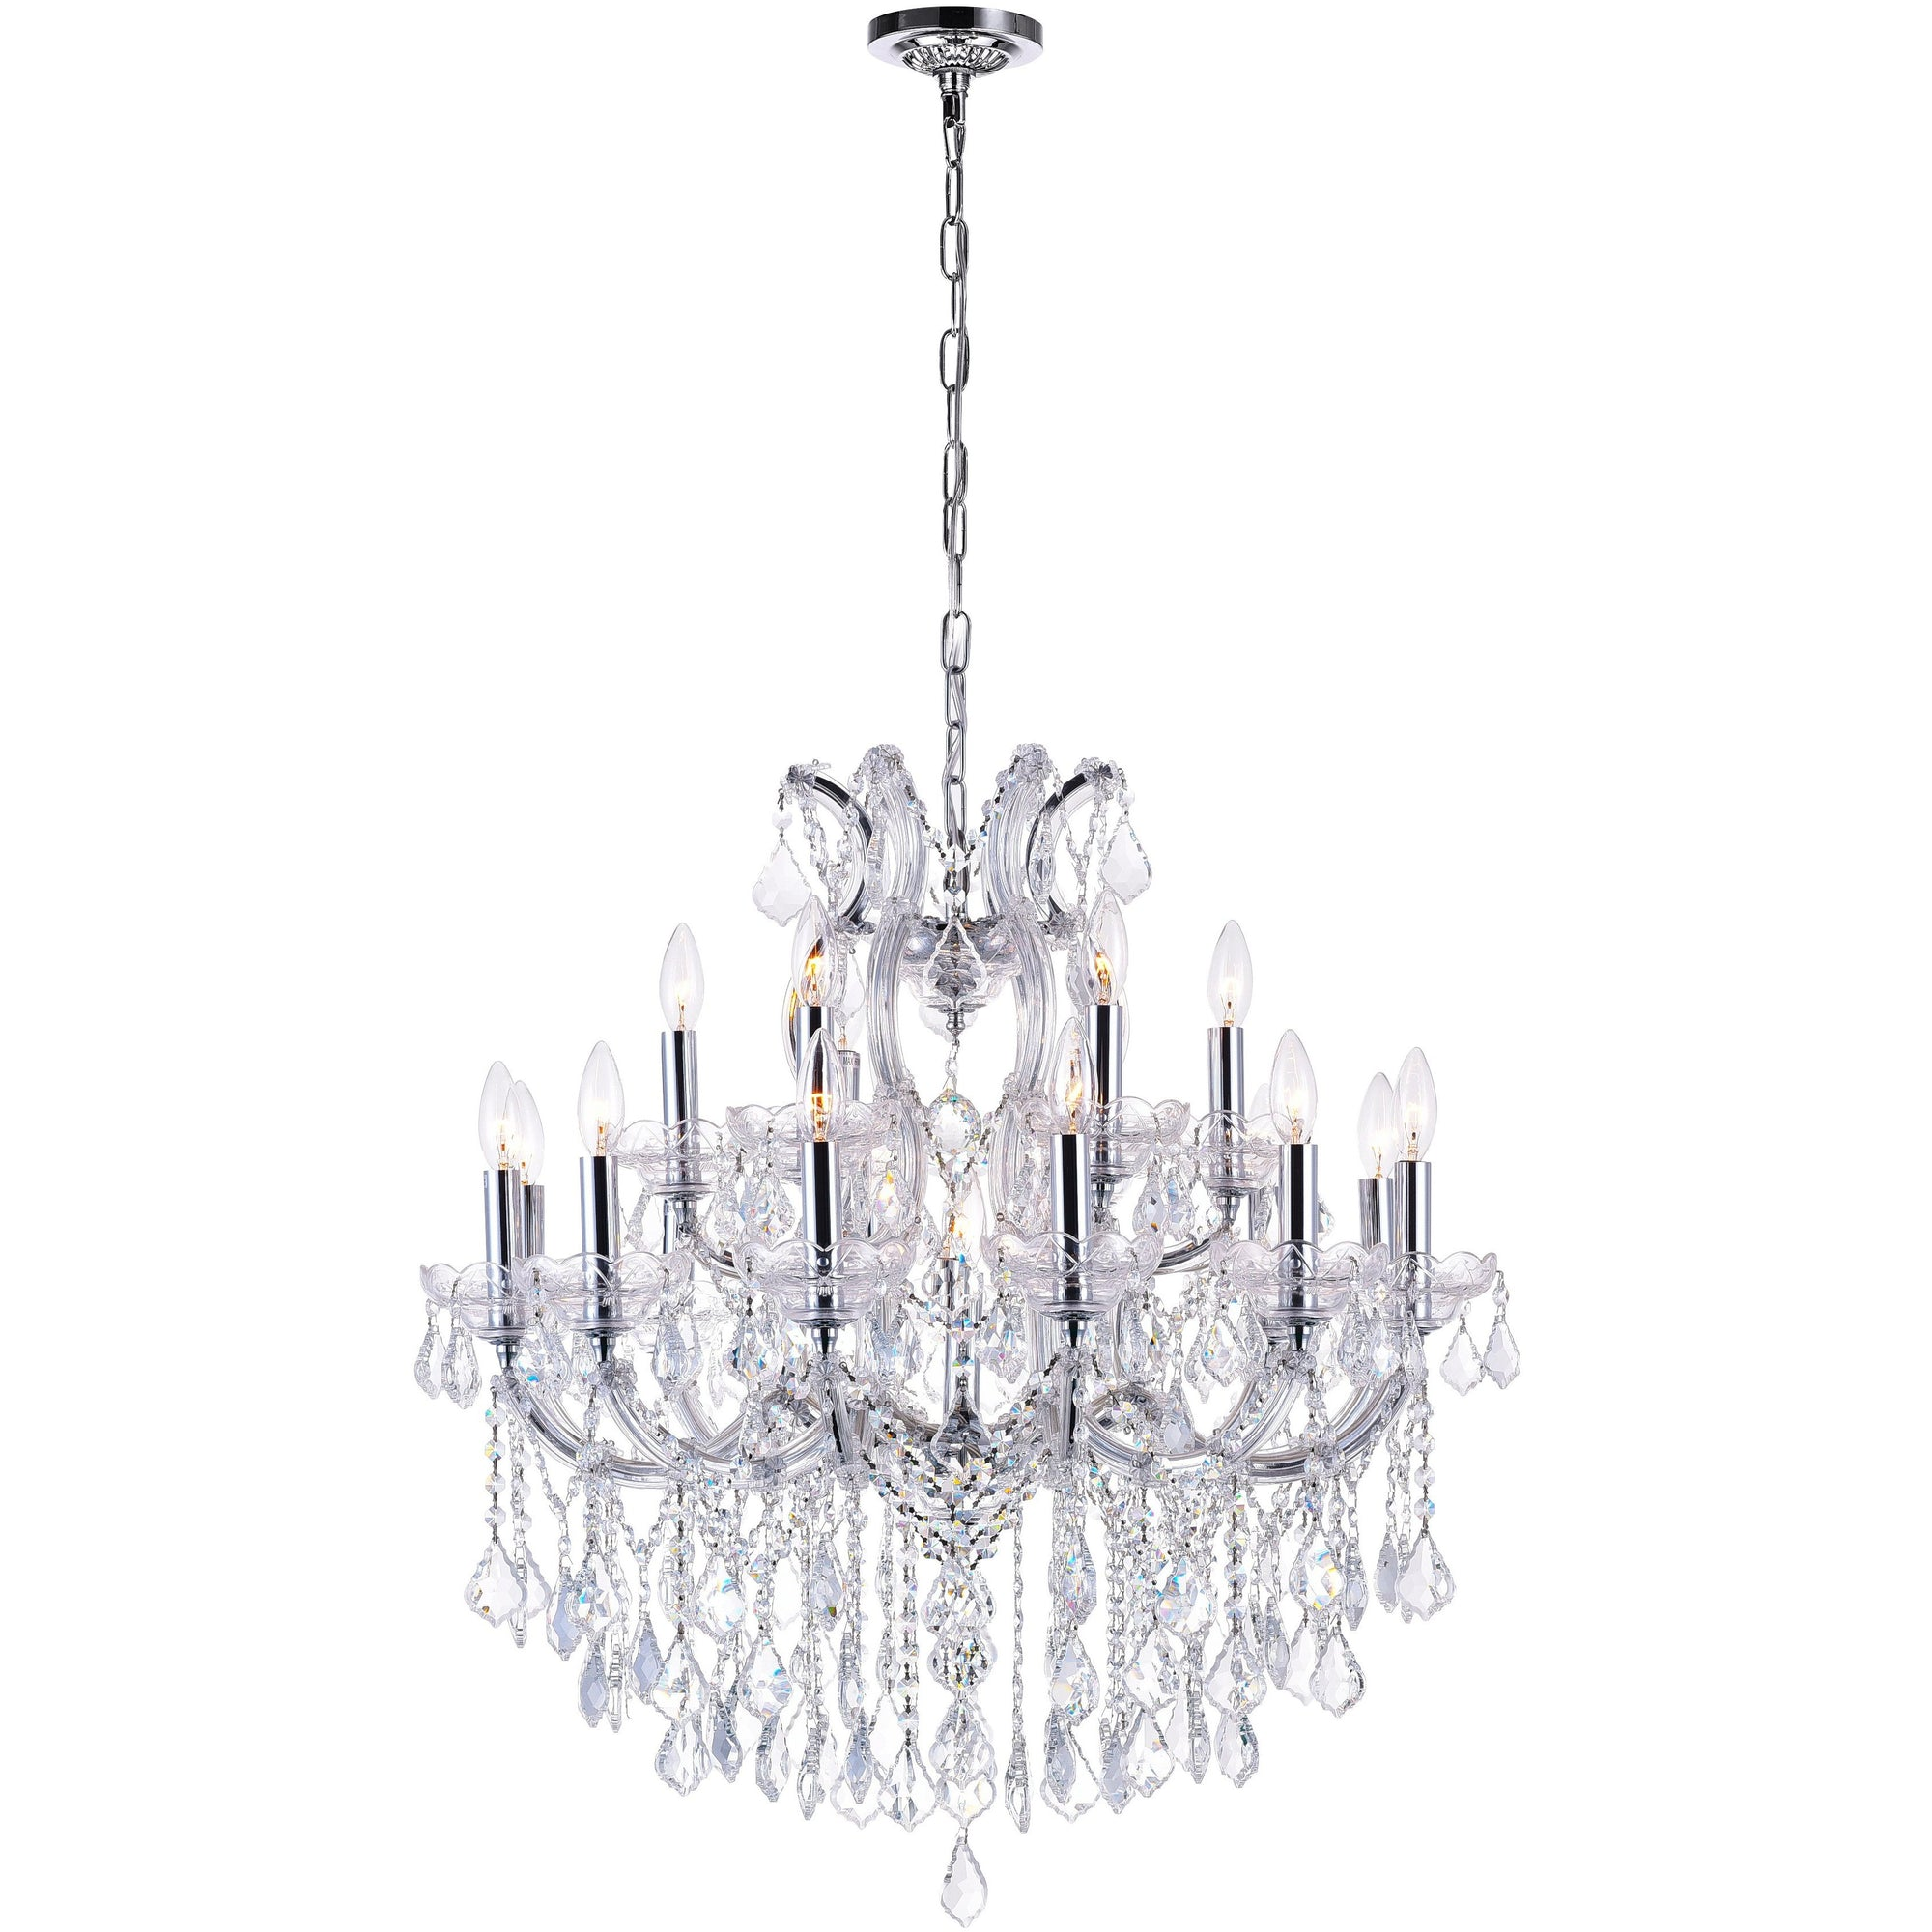 CWI Lighting Chandeliers Chrome / K9 Clear Maria Theresa 19 Light Up Chandelier with Chrome finish by CWI Lighting 8318P30C-19 (Clear)